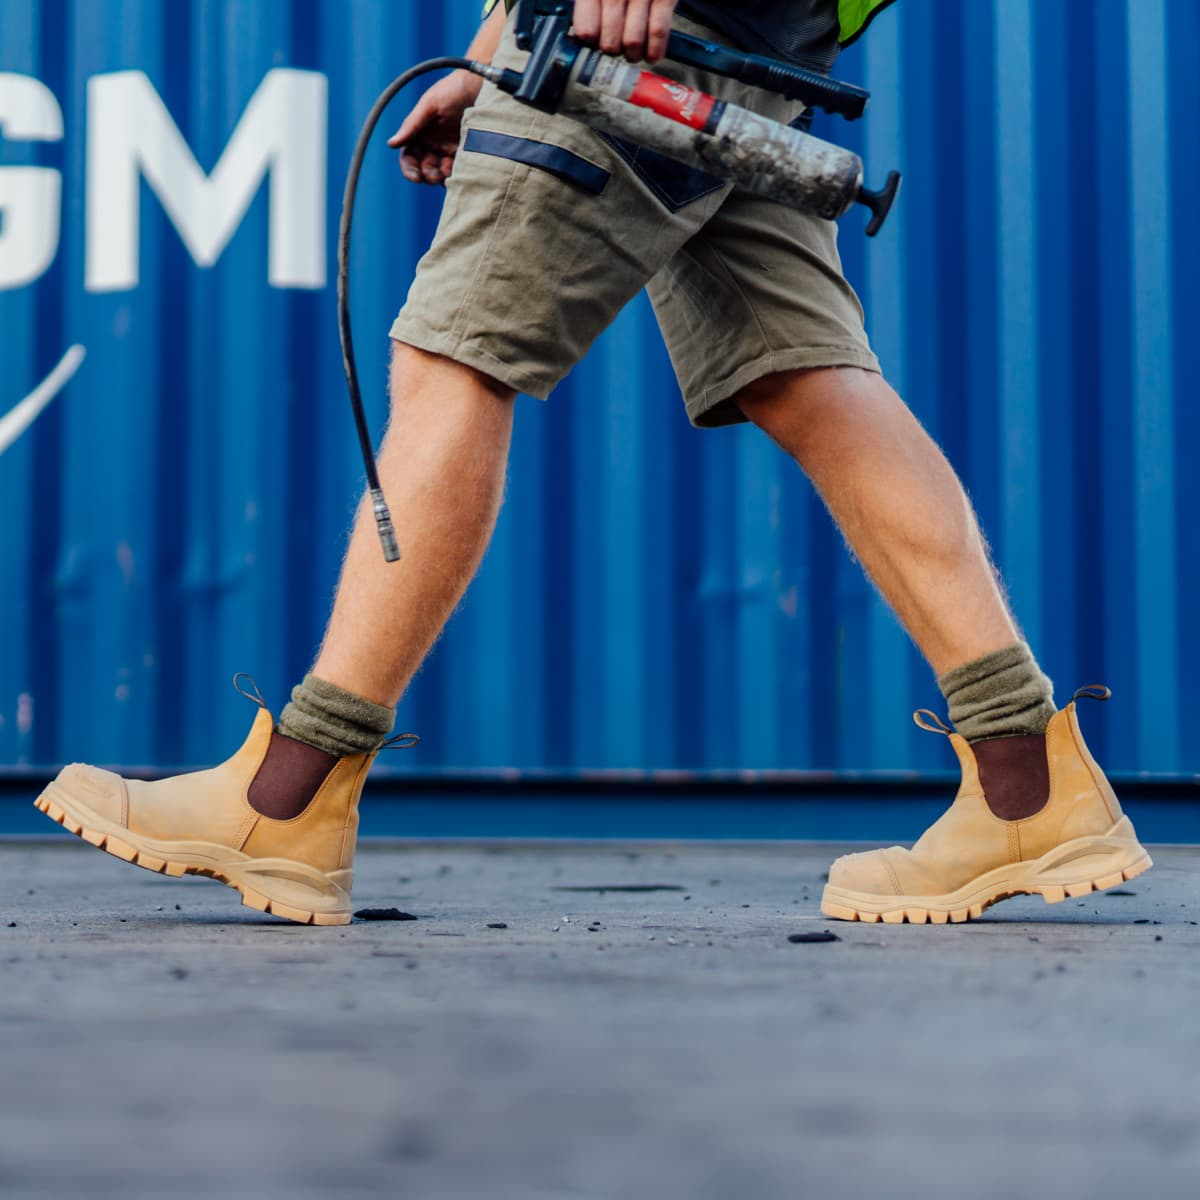 Blundstone 989 work boot on a construction site